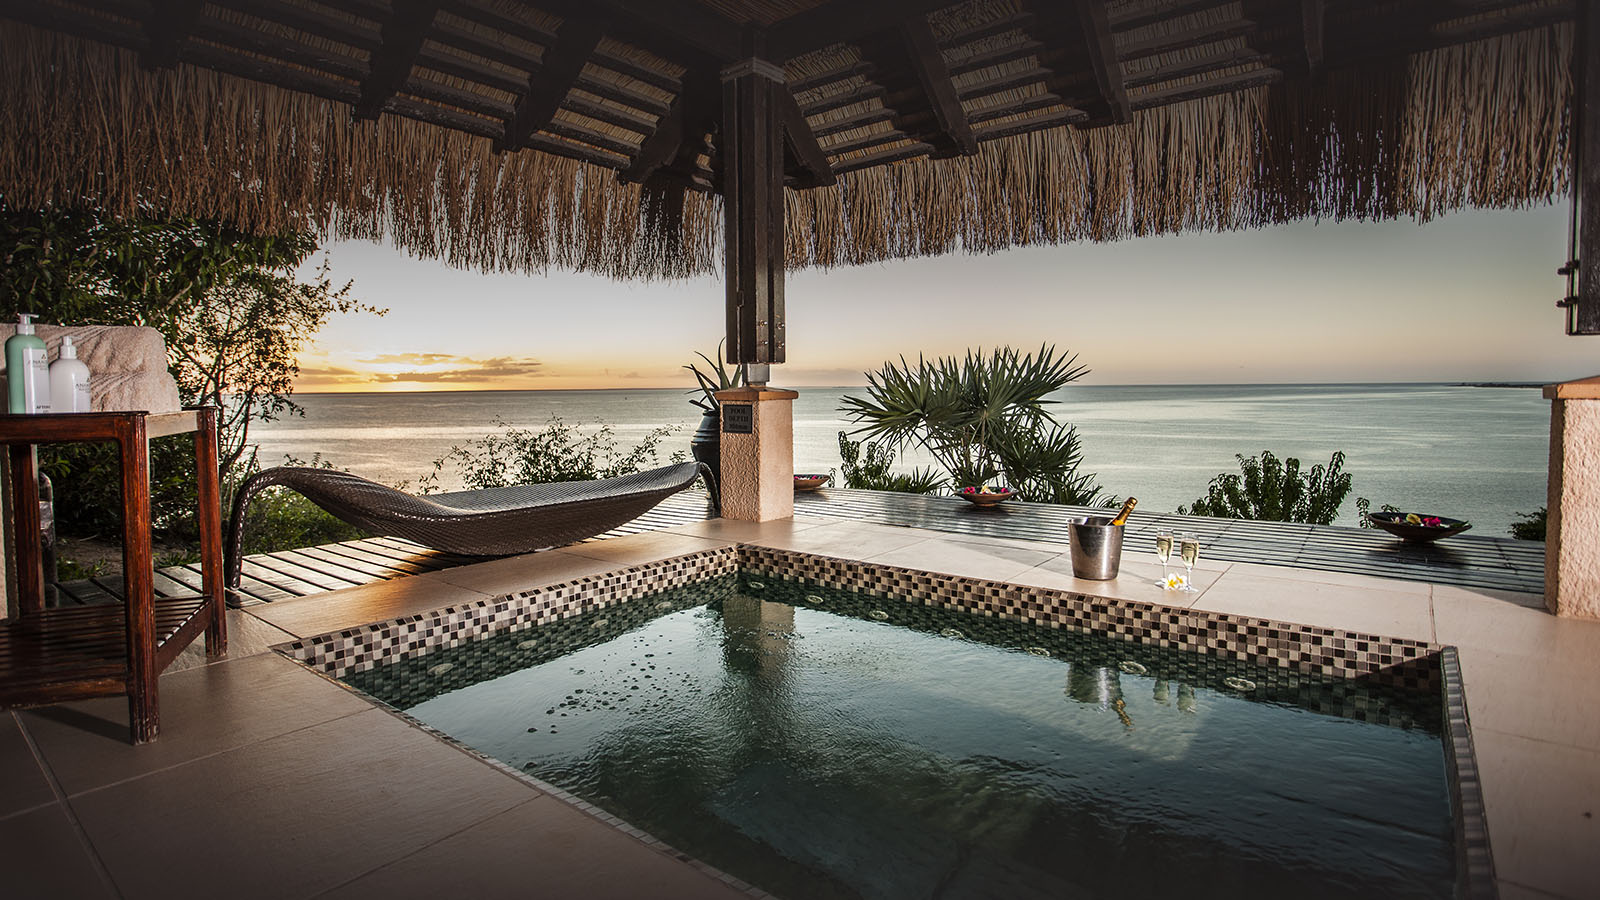 anantara bazaruto mozambique-lodges-zambia-in-style-luxury-bazaruto-island-pool-seaview